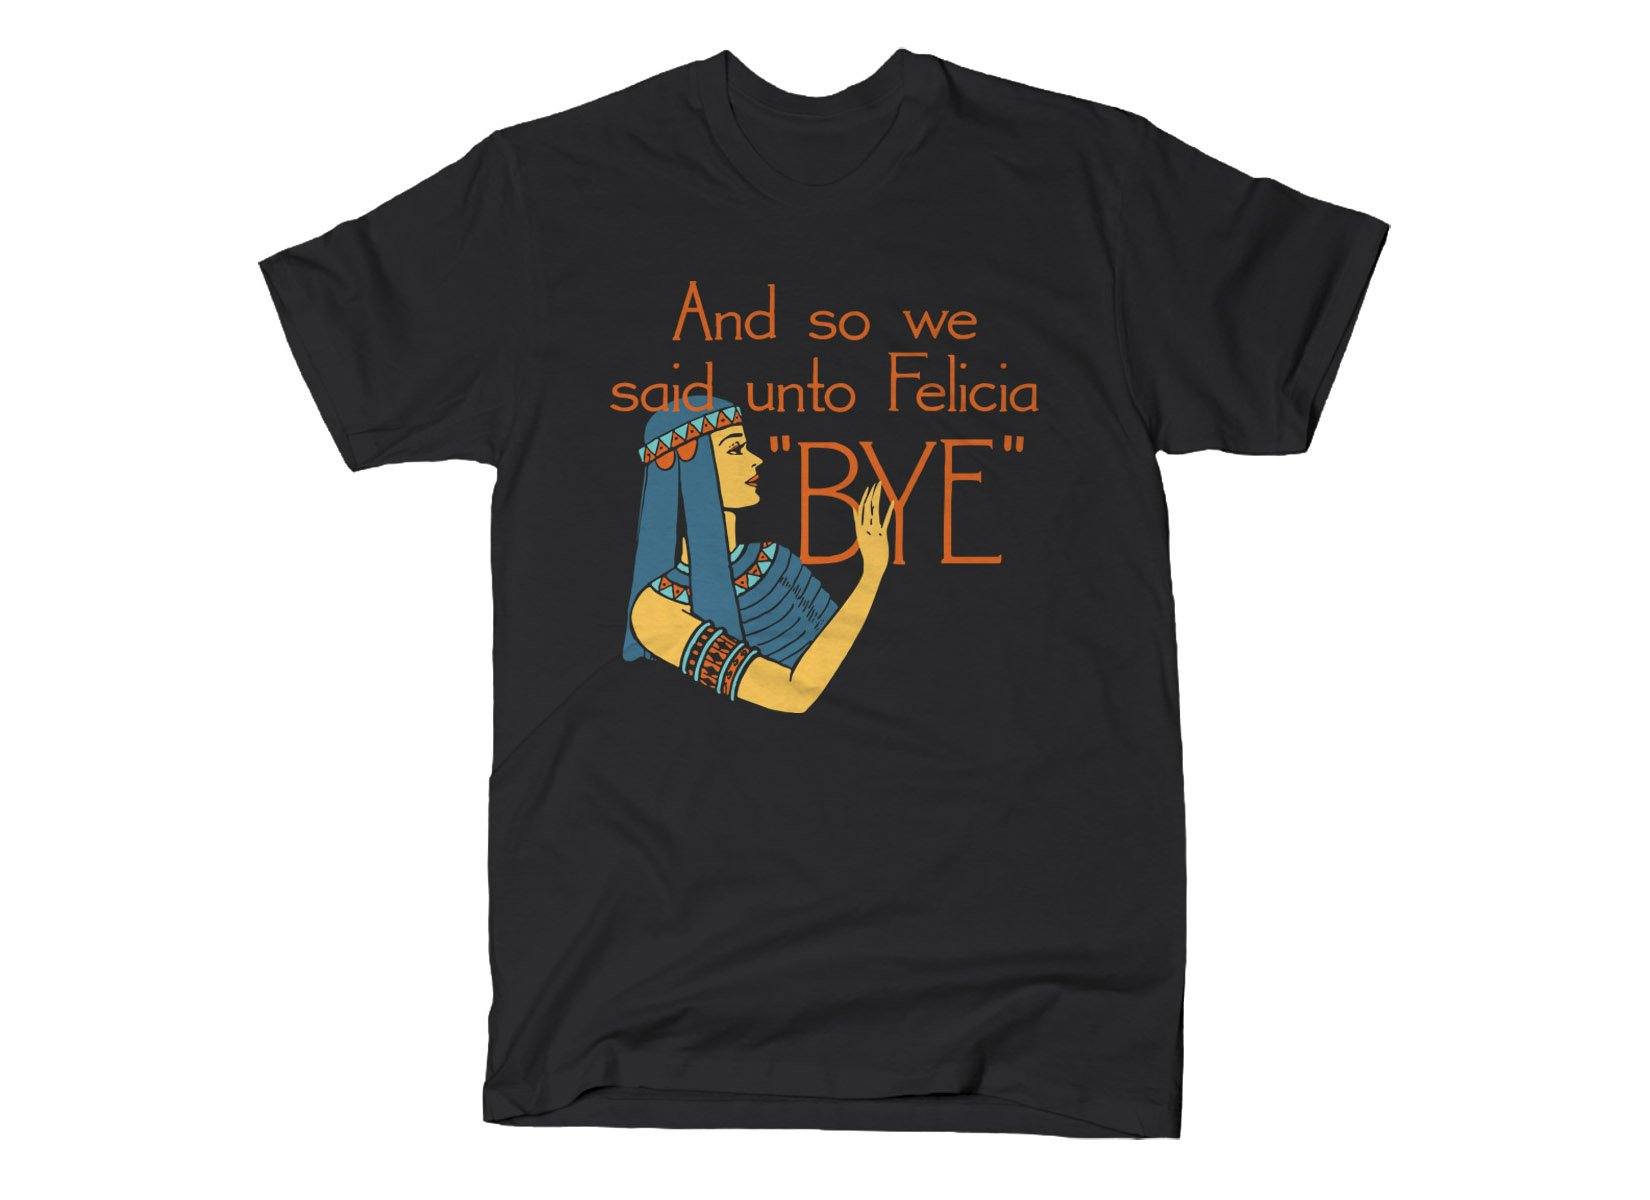 Bye Felicia on Mens T-Shirt